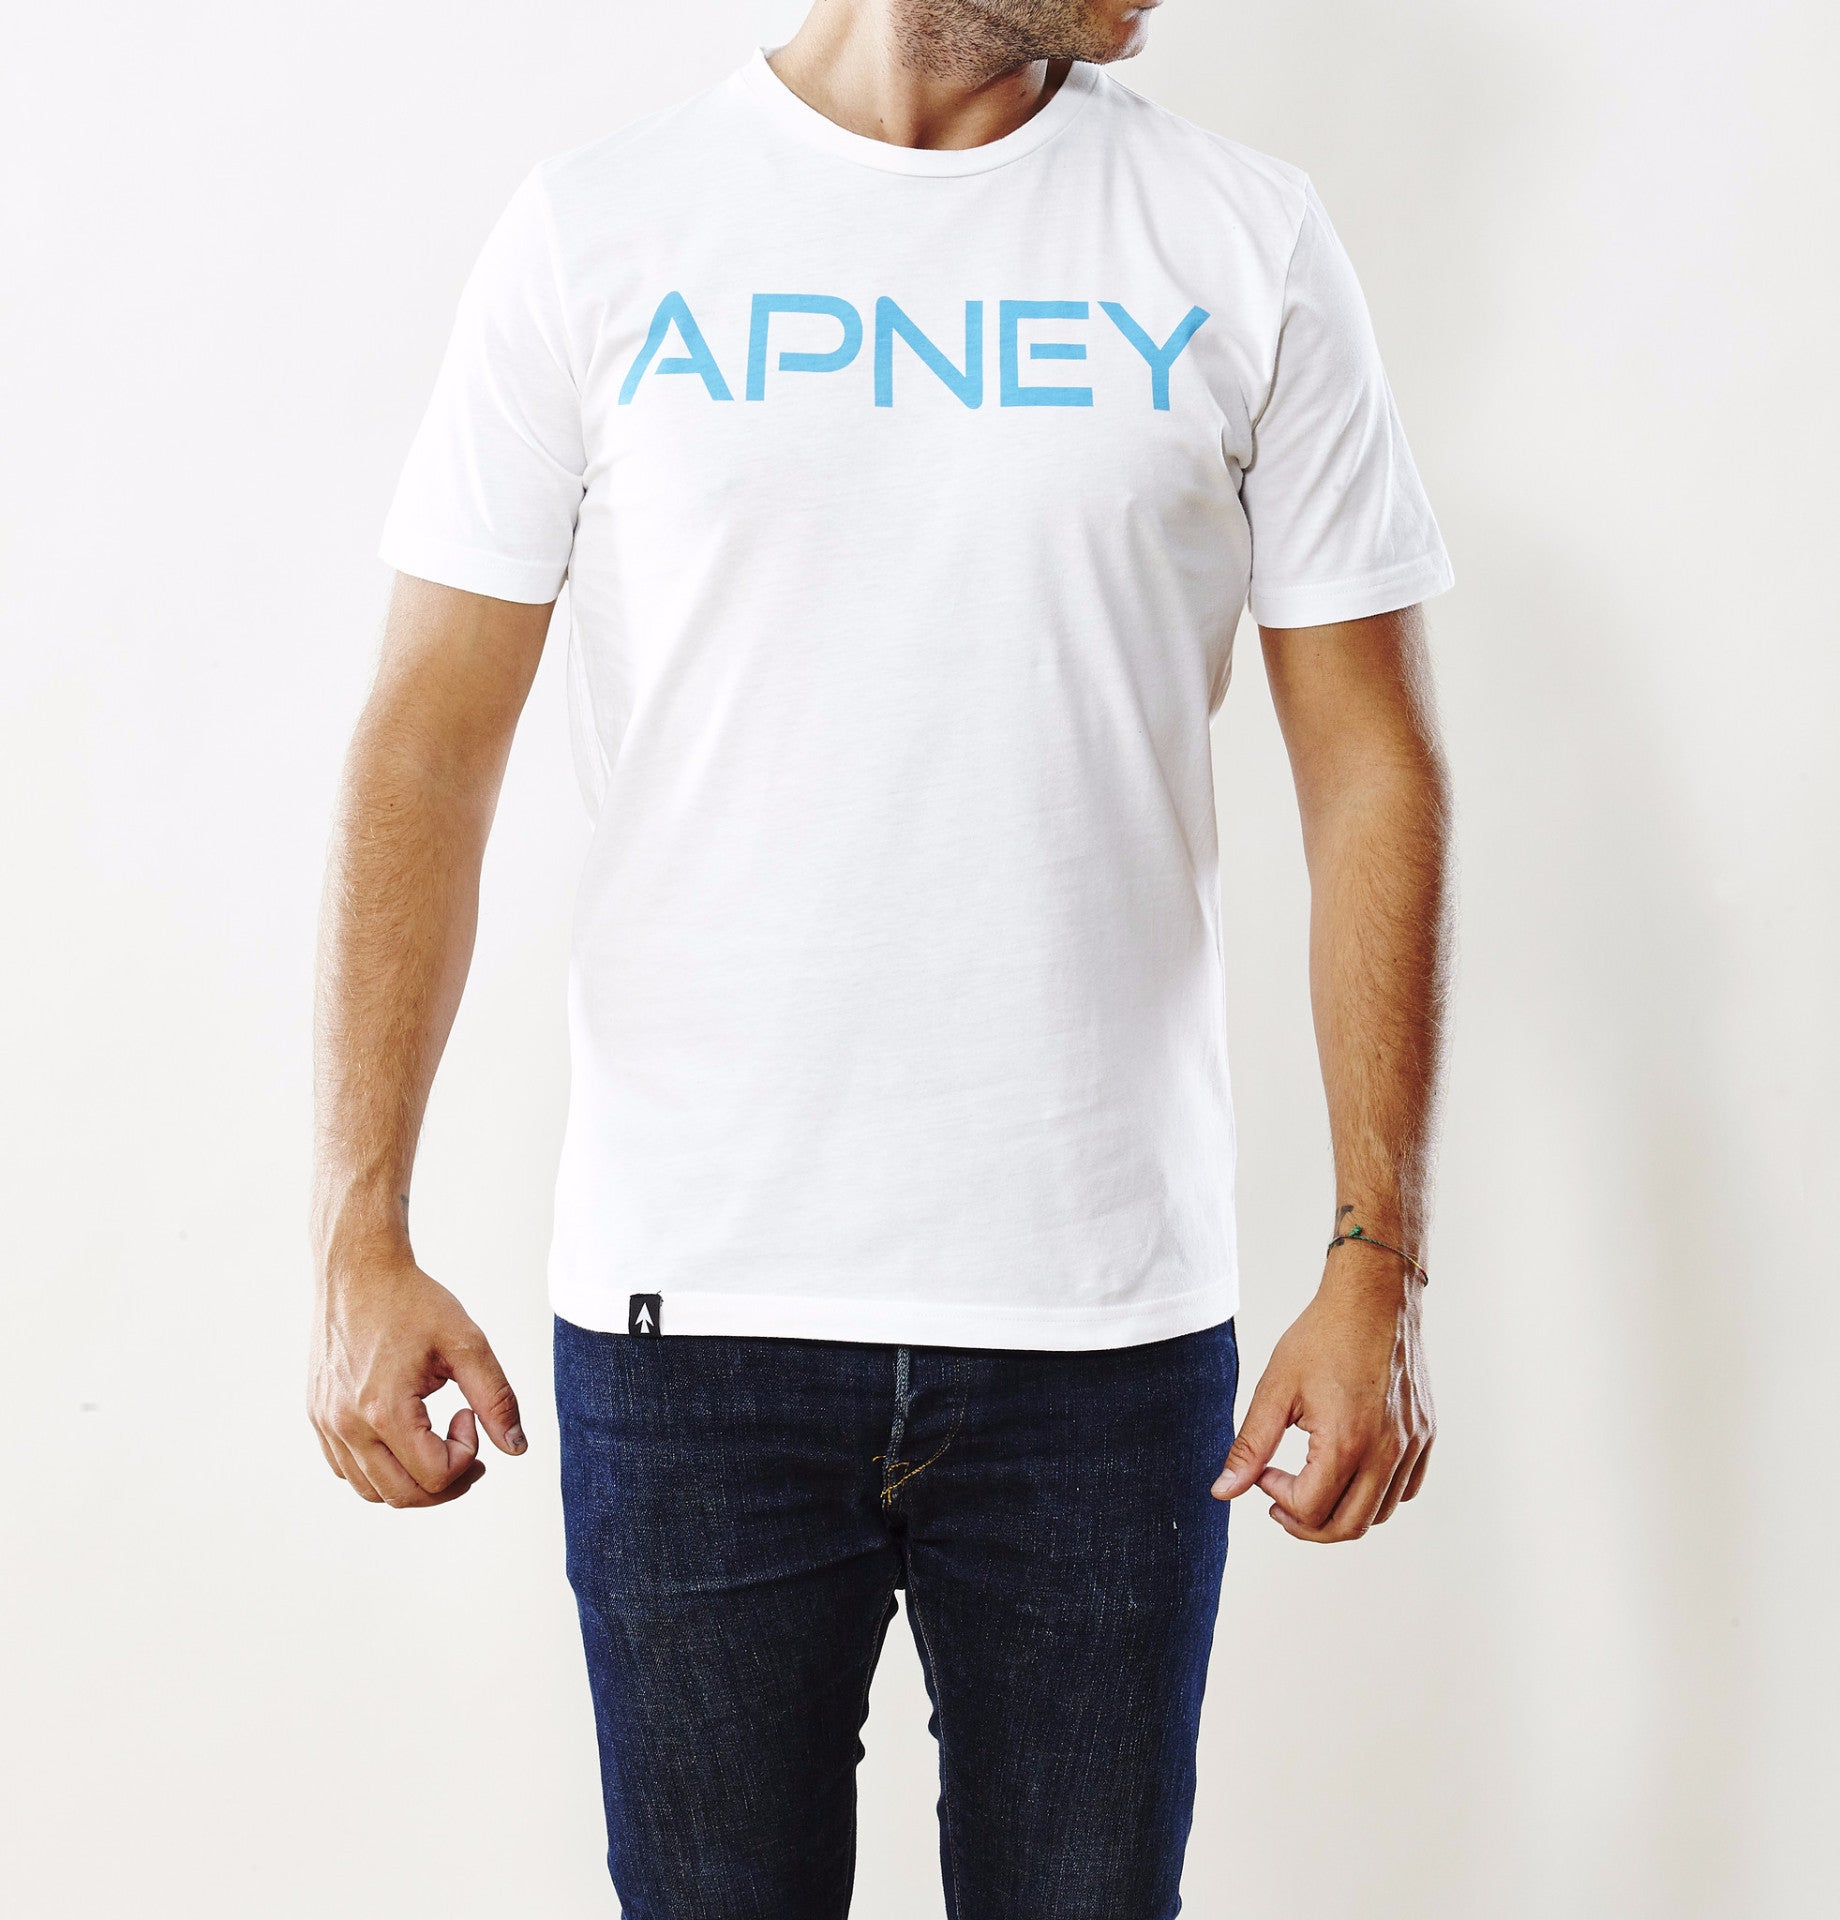 Apney White&Blue T-shirt